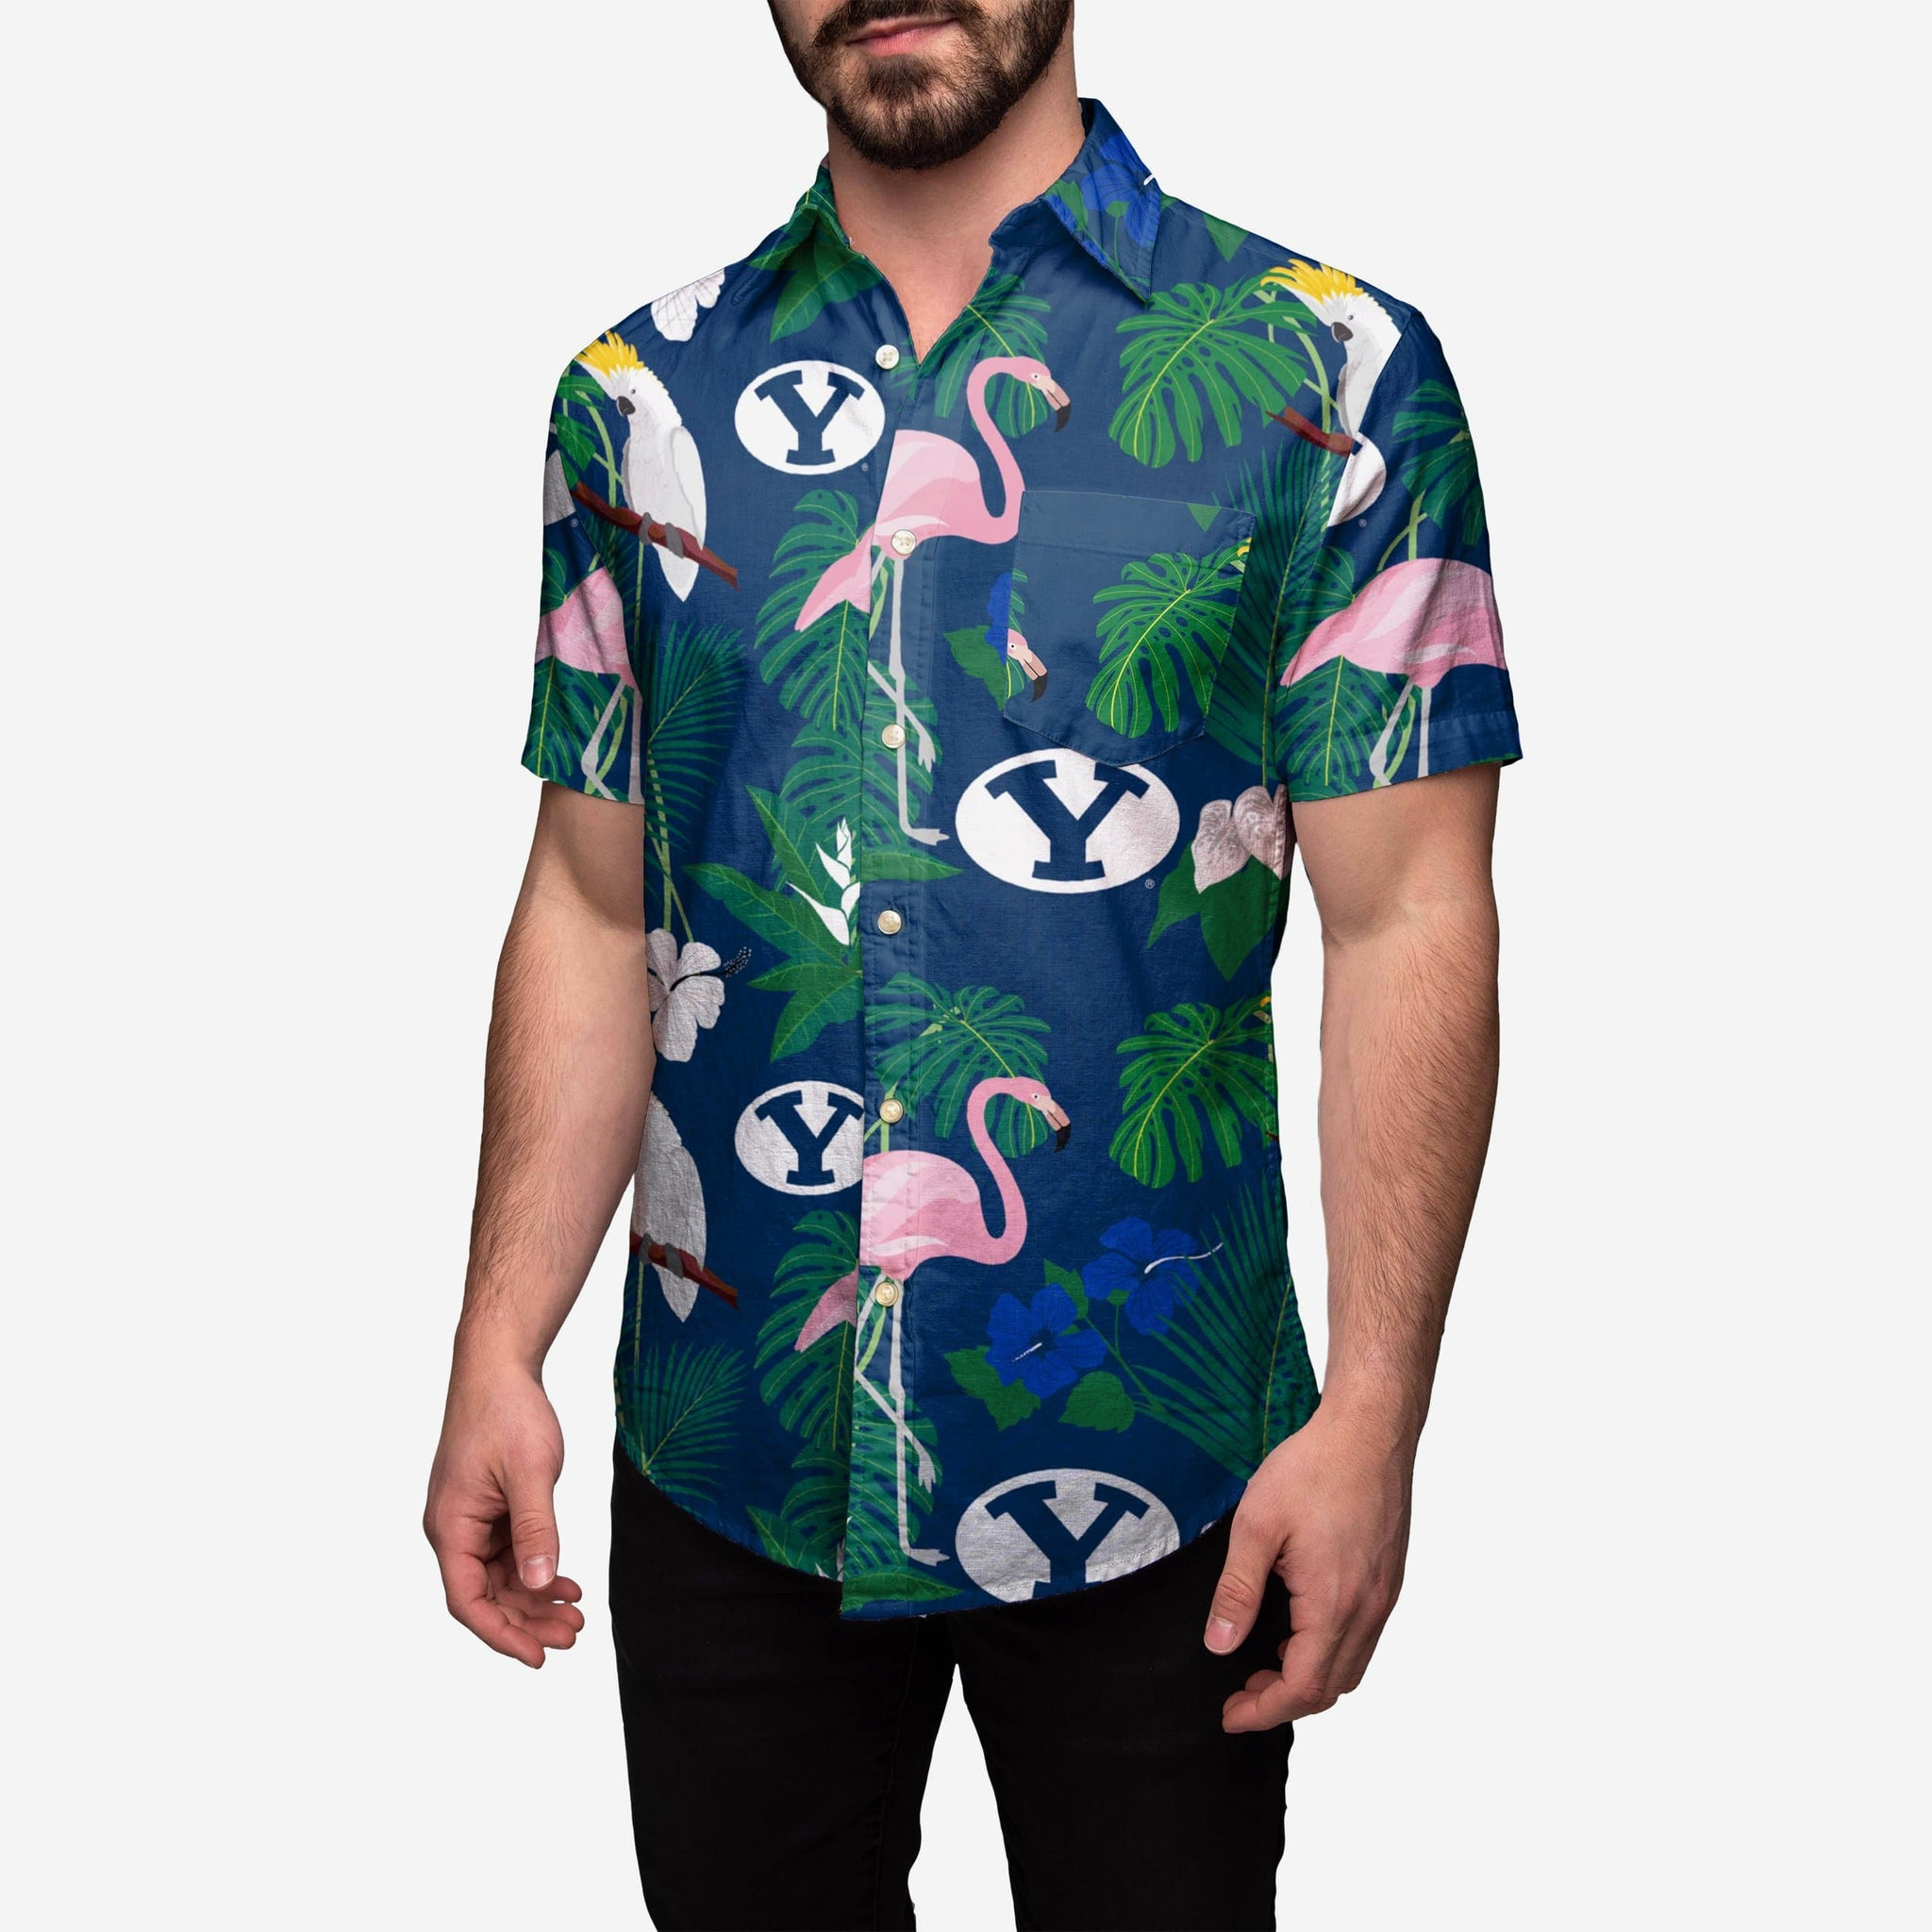 BYU Cougars Floral Button Up Shirt FOCO 2XL - FOCO.com